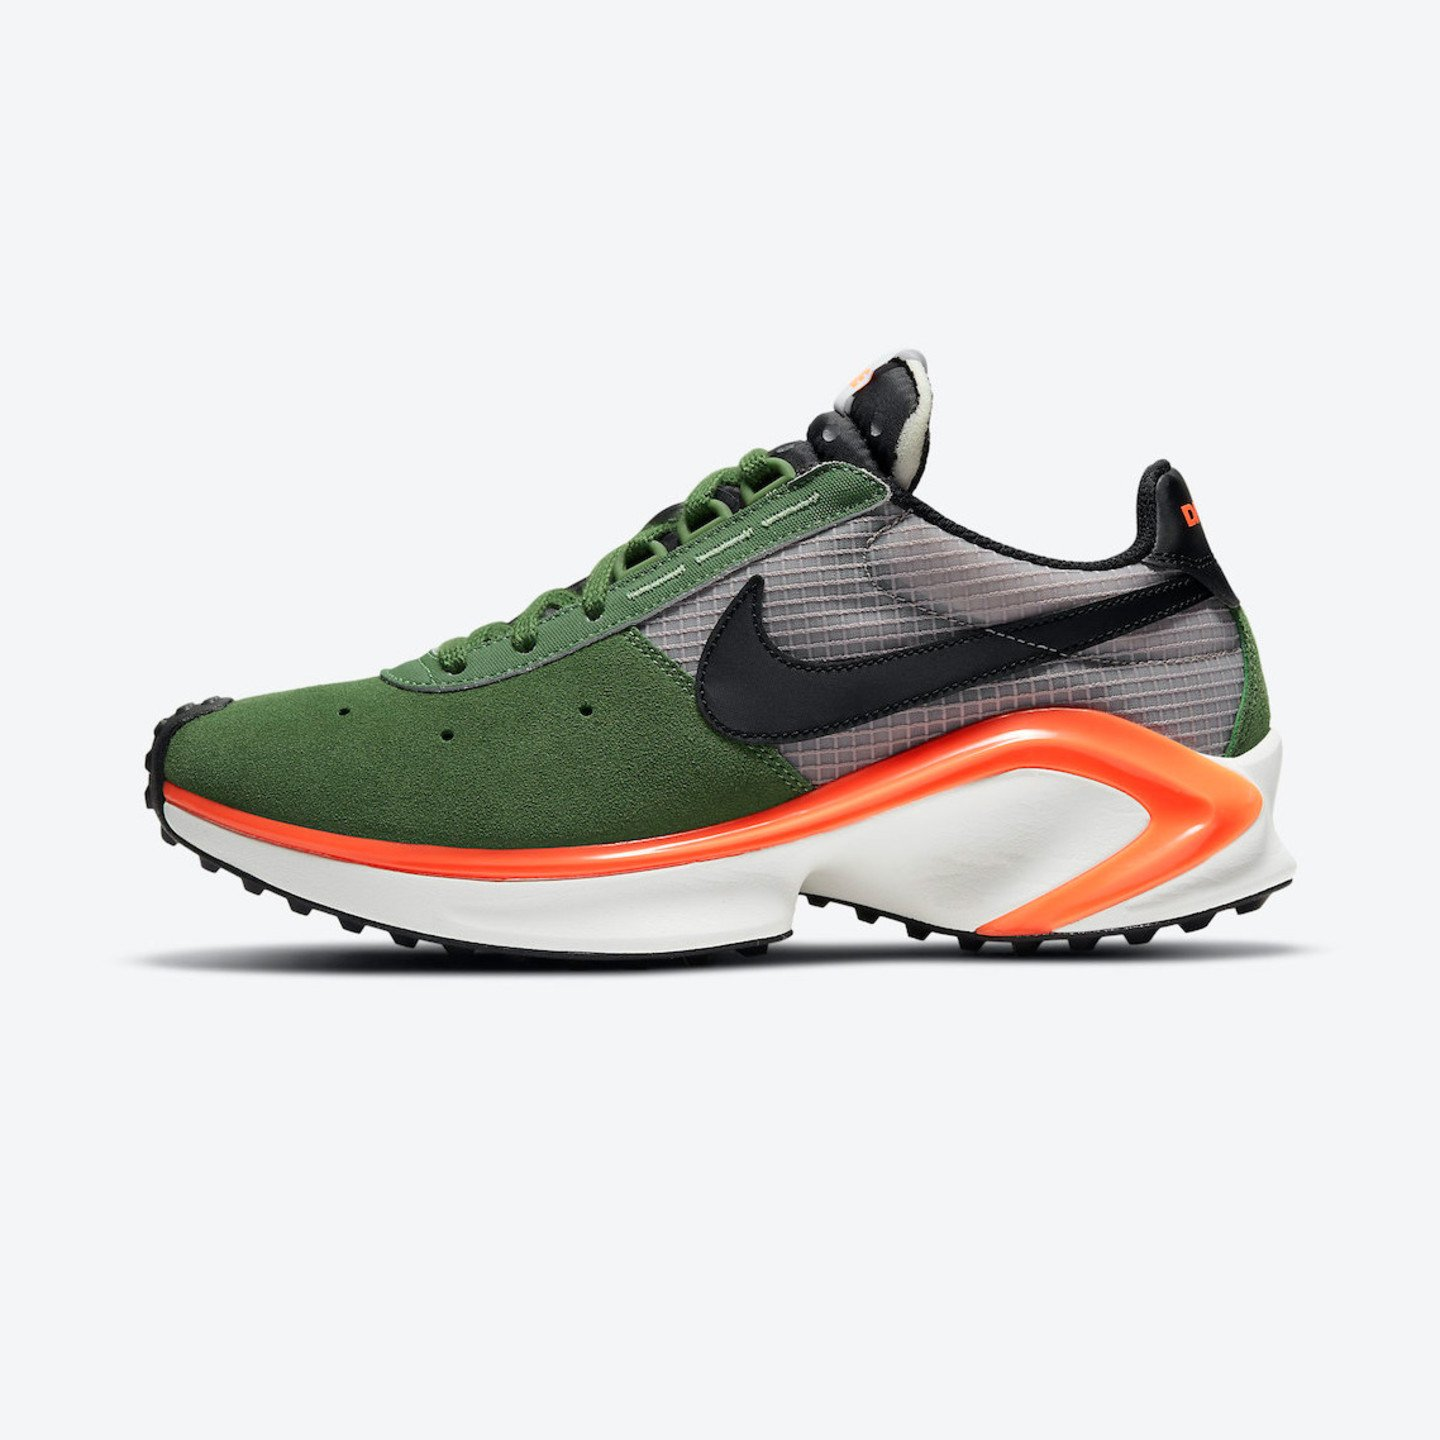 Nike D/MS/X Waffle Forest Green / Black / Orange / College Grey CQ0205-300